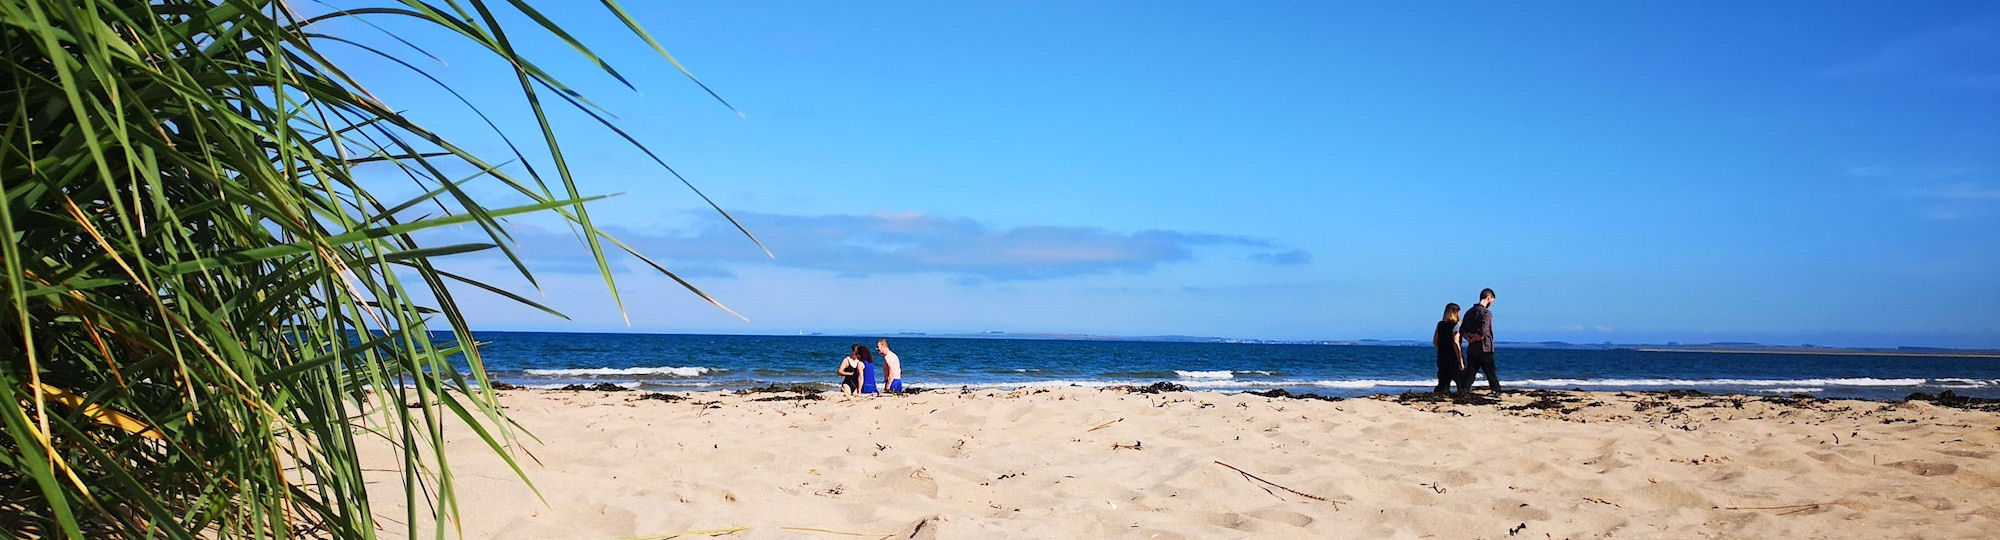 dornoch-golden-sands